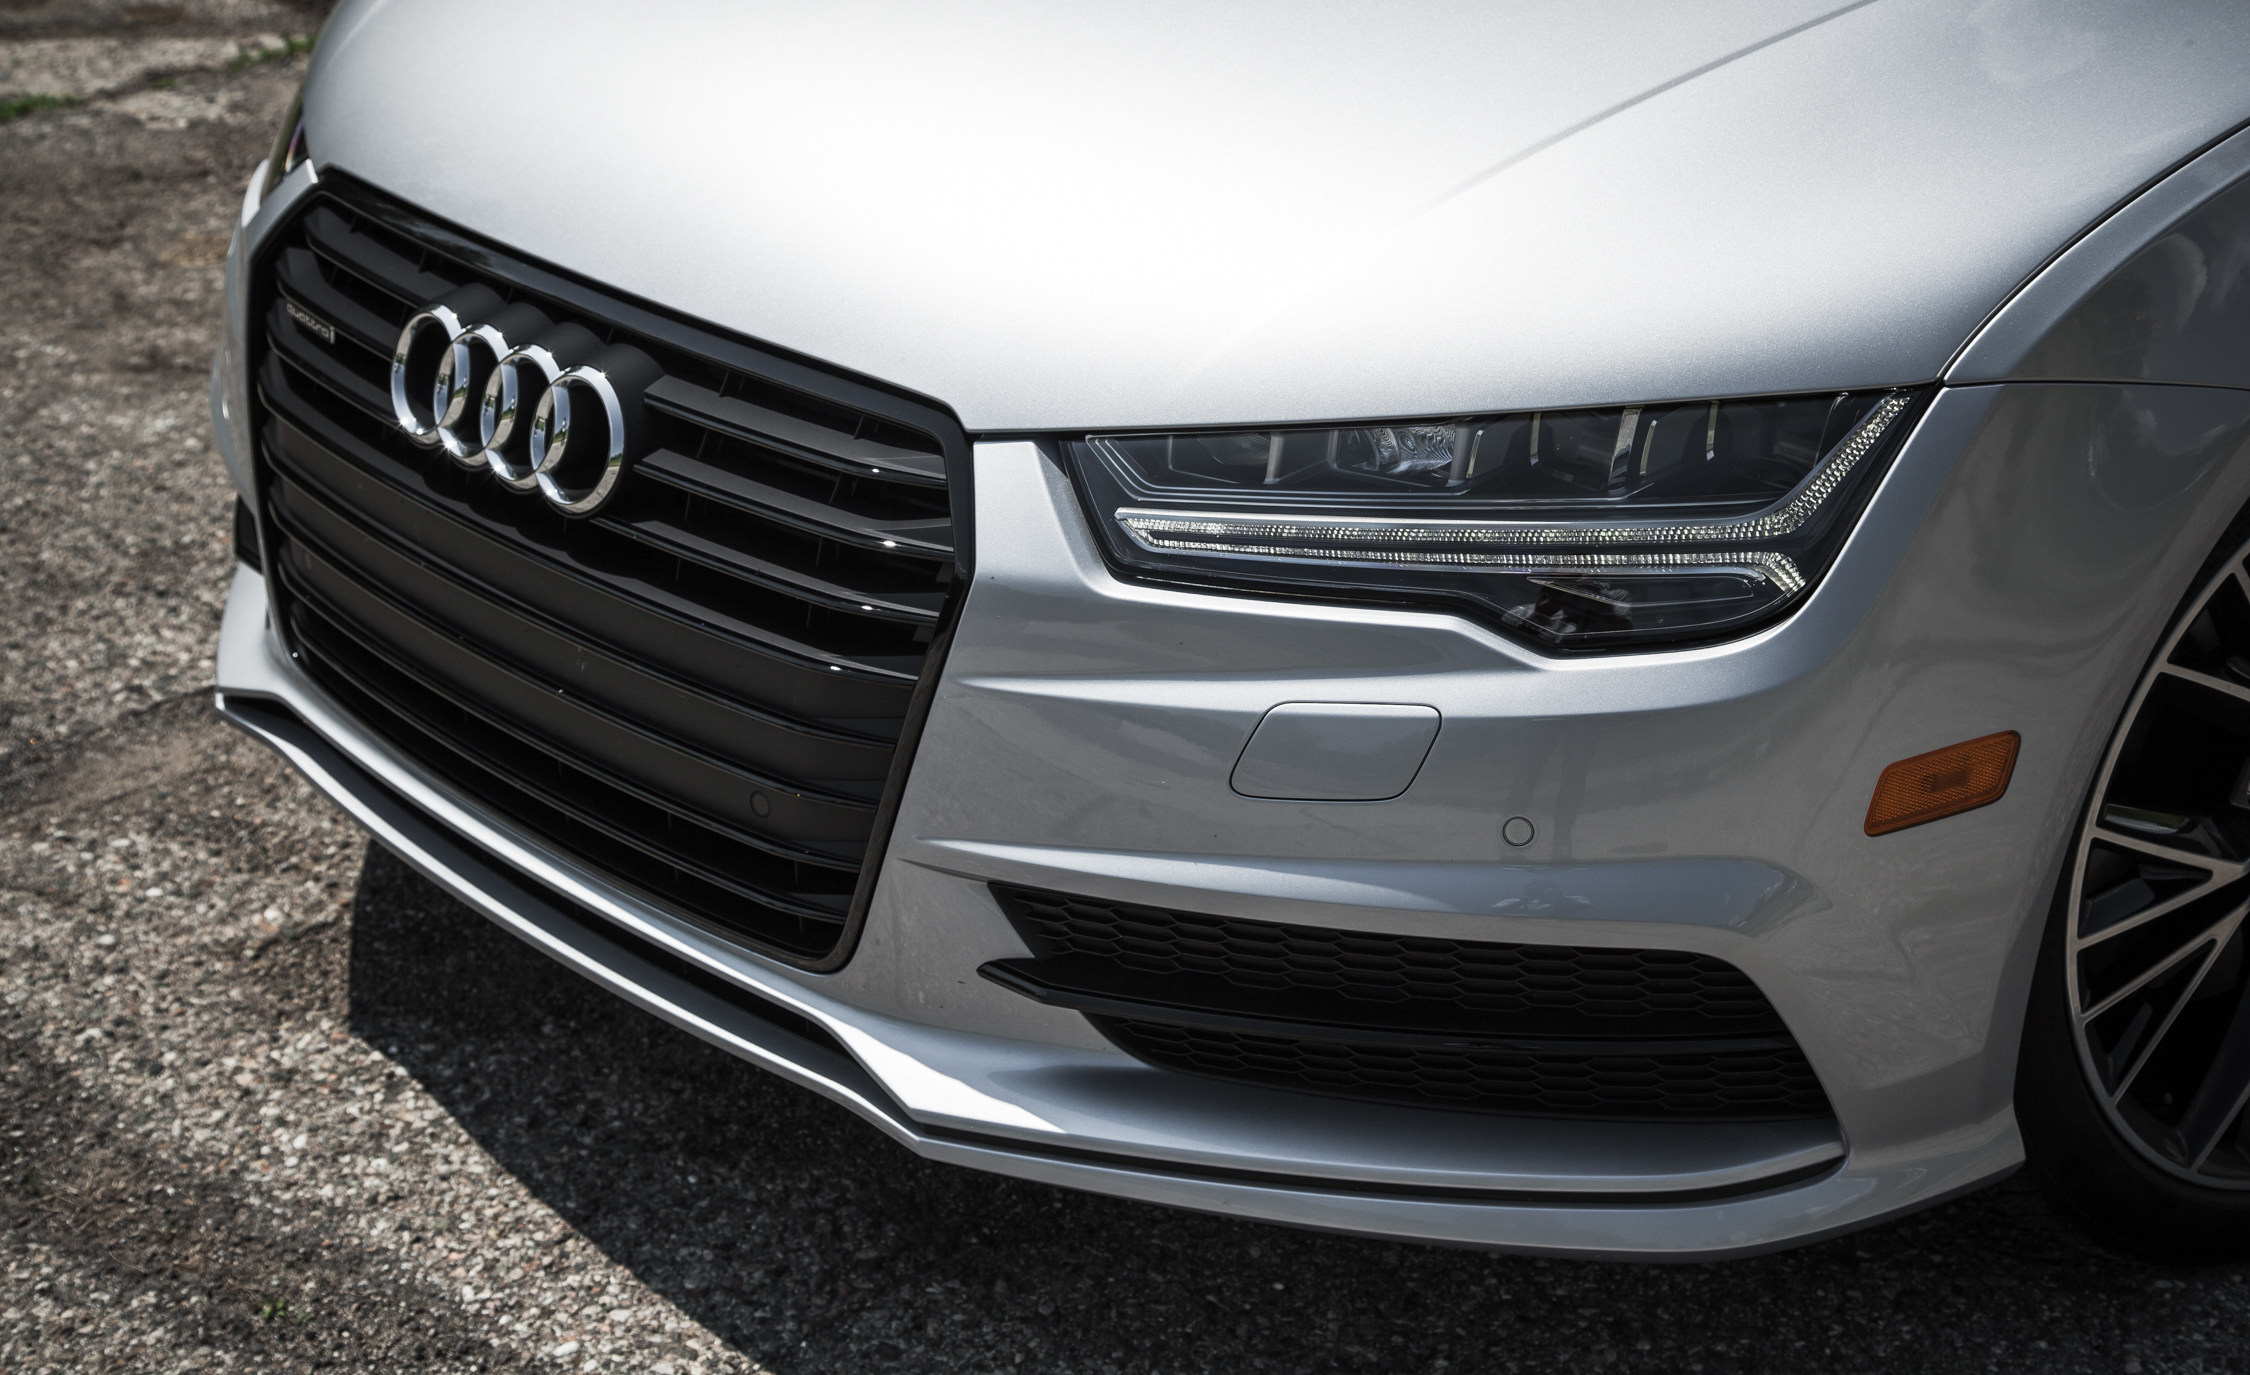 2016 Audi A7 Exterior View Grille (Photo 9 of 26)